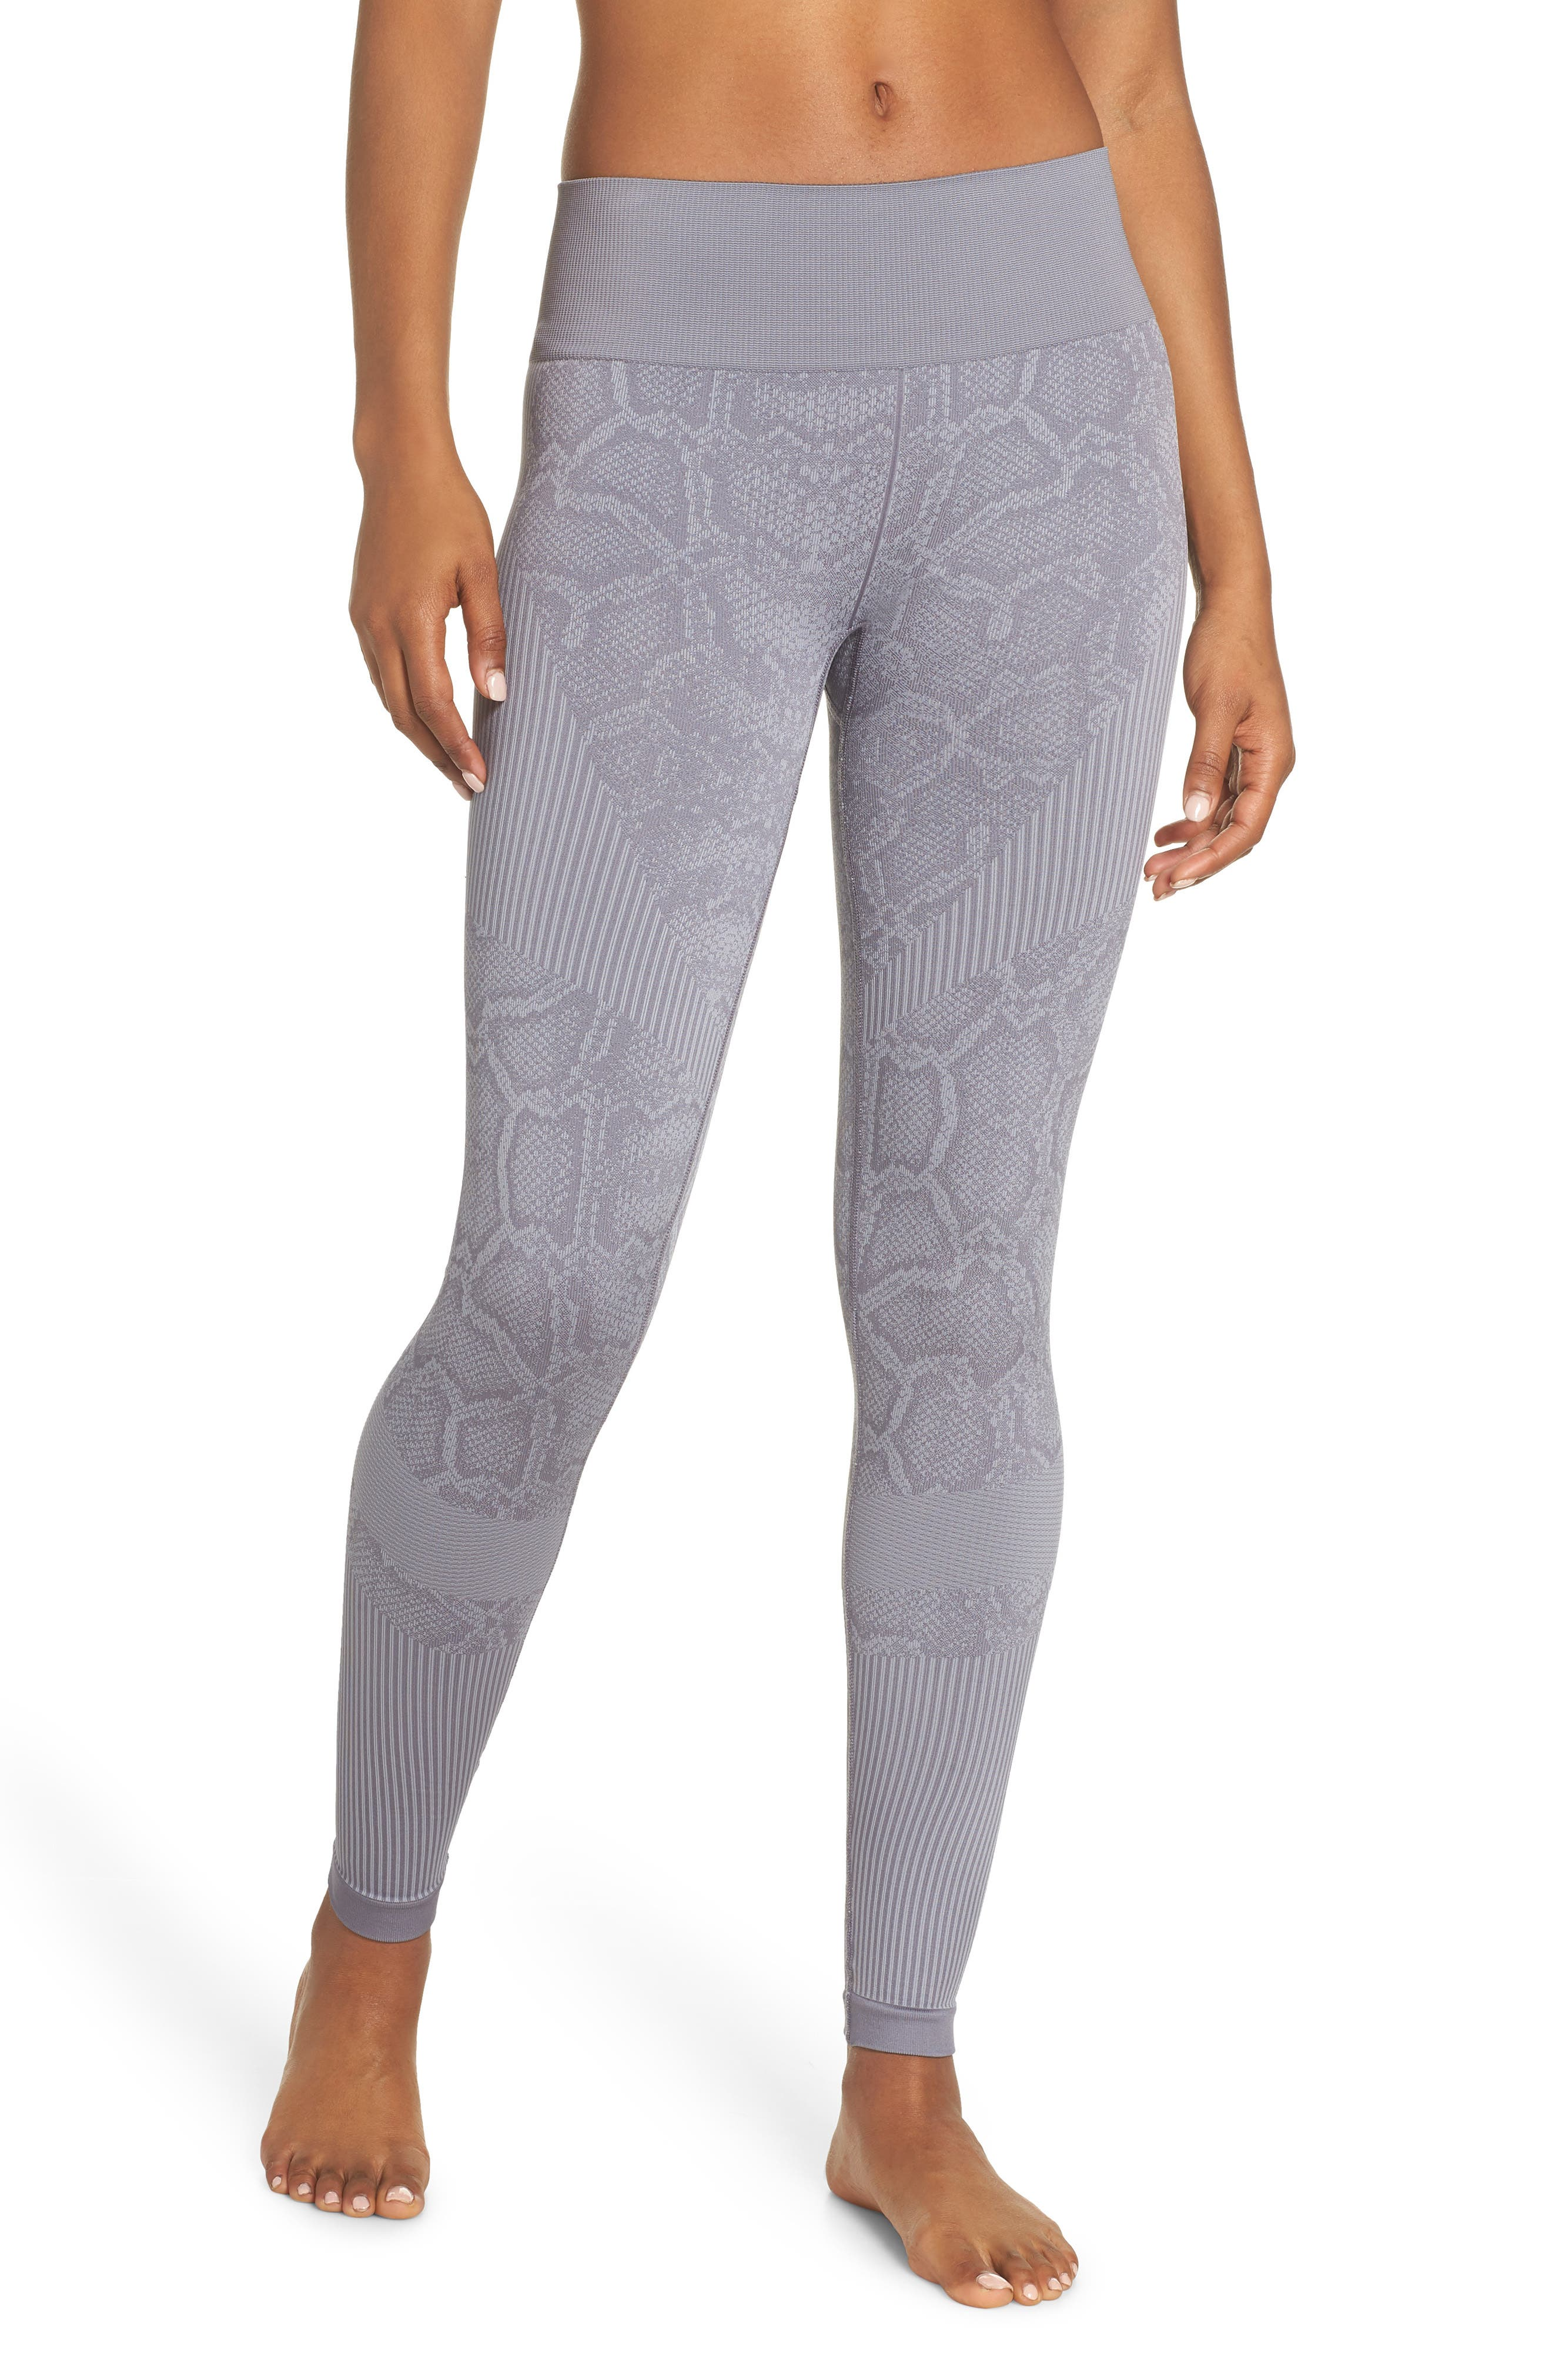 Quincy Seamless Leggings,                         Main,                         color, GREY SNAKE